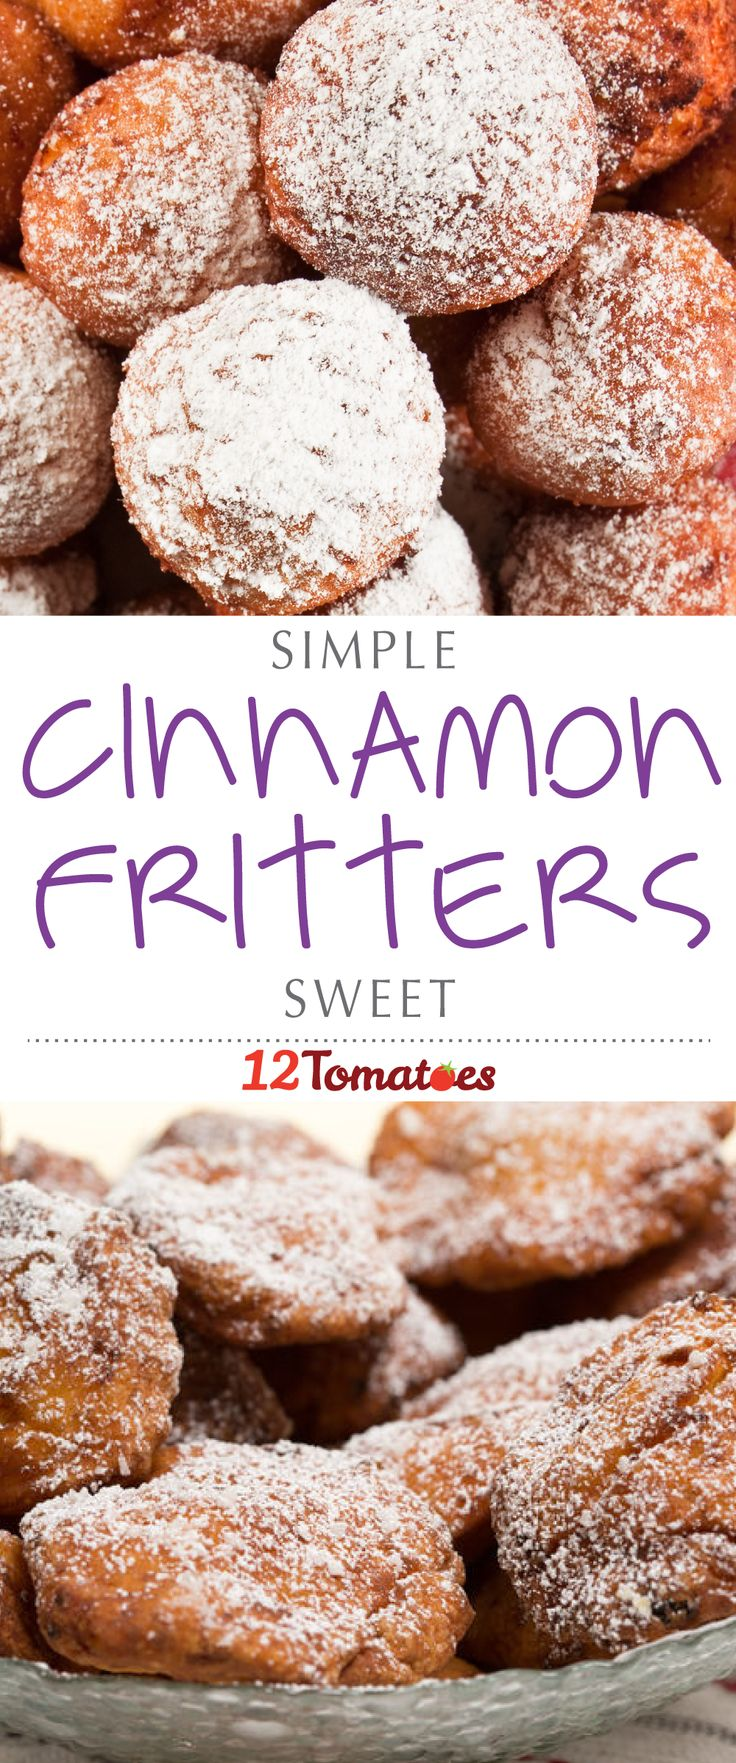 There's nothing better than a lip-smackingly delicious dish that comes together quickly and easily, and this recipe fits the bill perfectly. Like a cross between a doughnut and a beignet, fritters can be savory or sweet…and with our sweet tooth, we had to try our hands at a simple cinnamon fritter that hits the spot in every way!